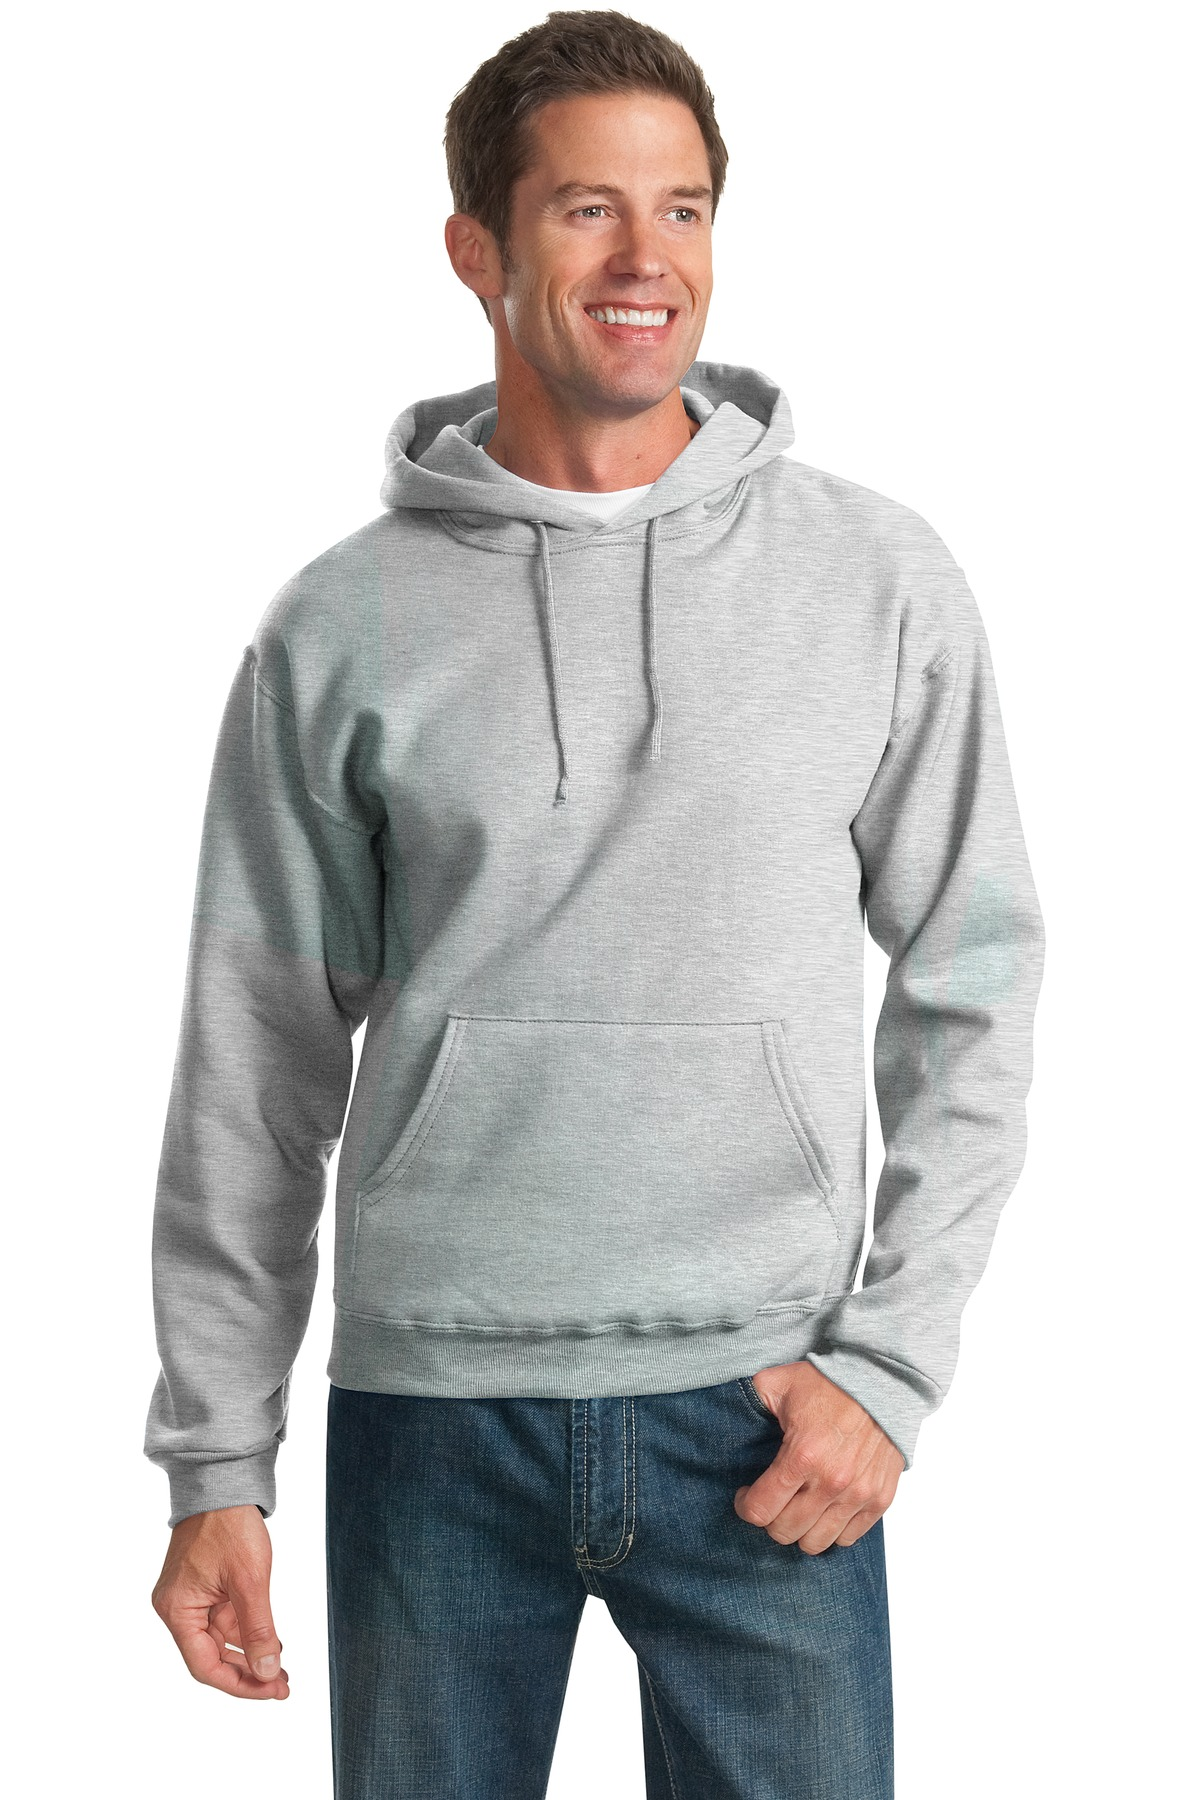 JERZEES ®  - NuBlend ®  Pullover Hooded Sweatshirt.  996M - Ash